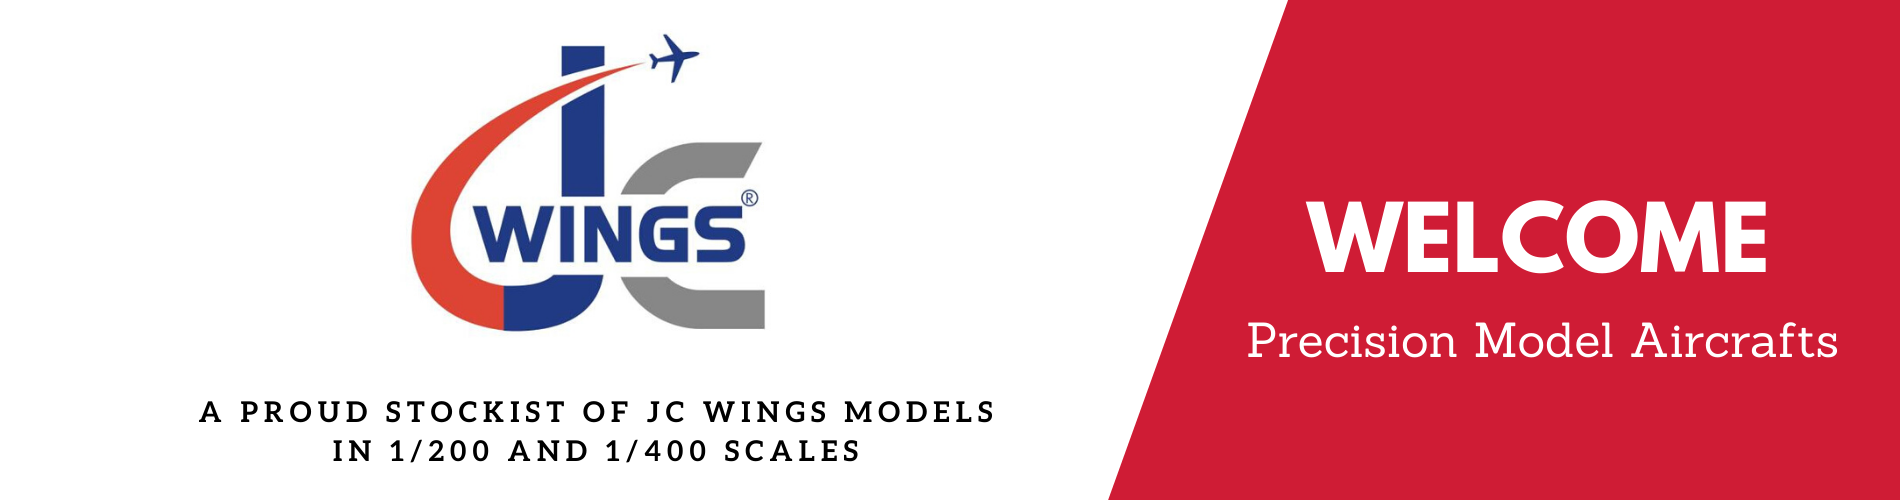 jc-wings-banner.png